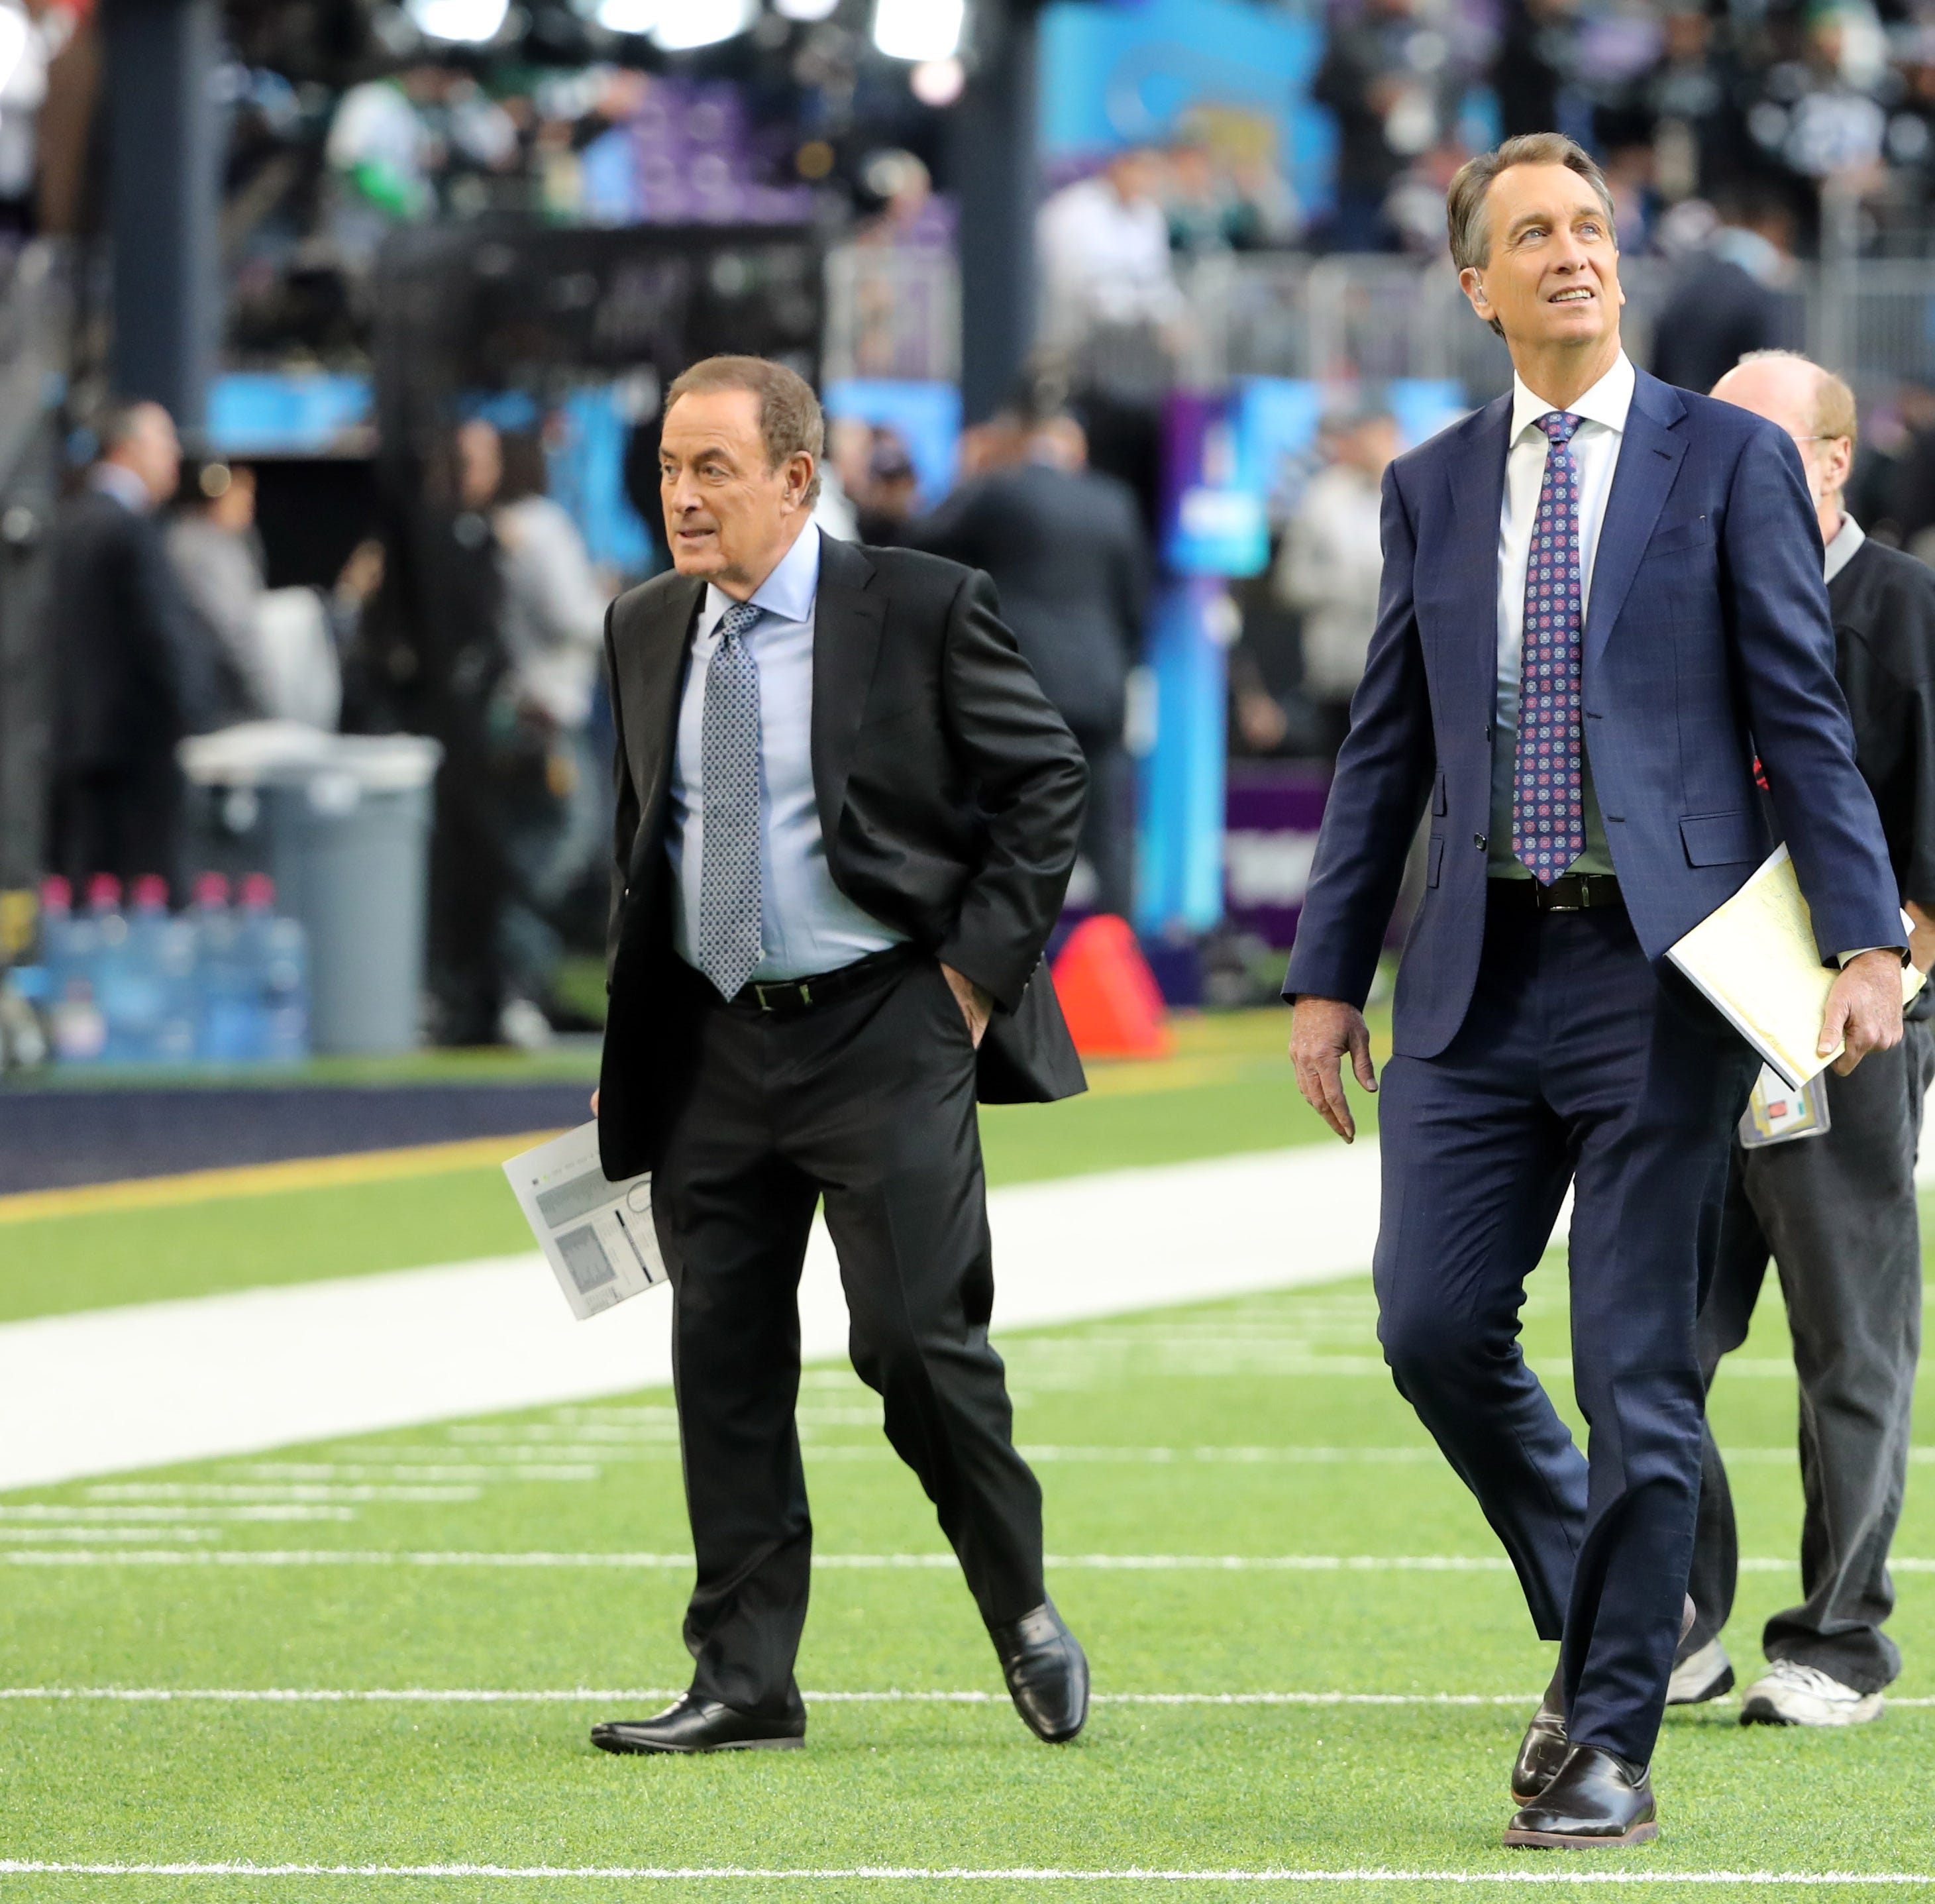 NBC changes up Cris Collinsworth slide on 'Sunday Night Football'